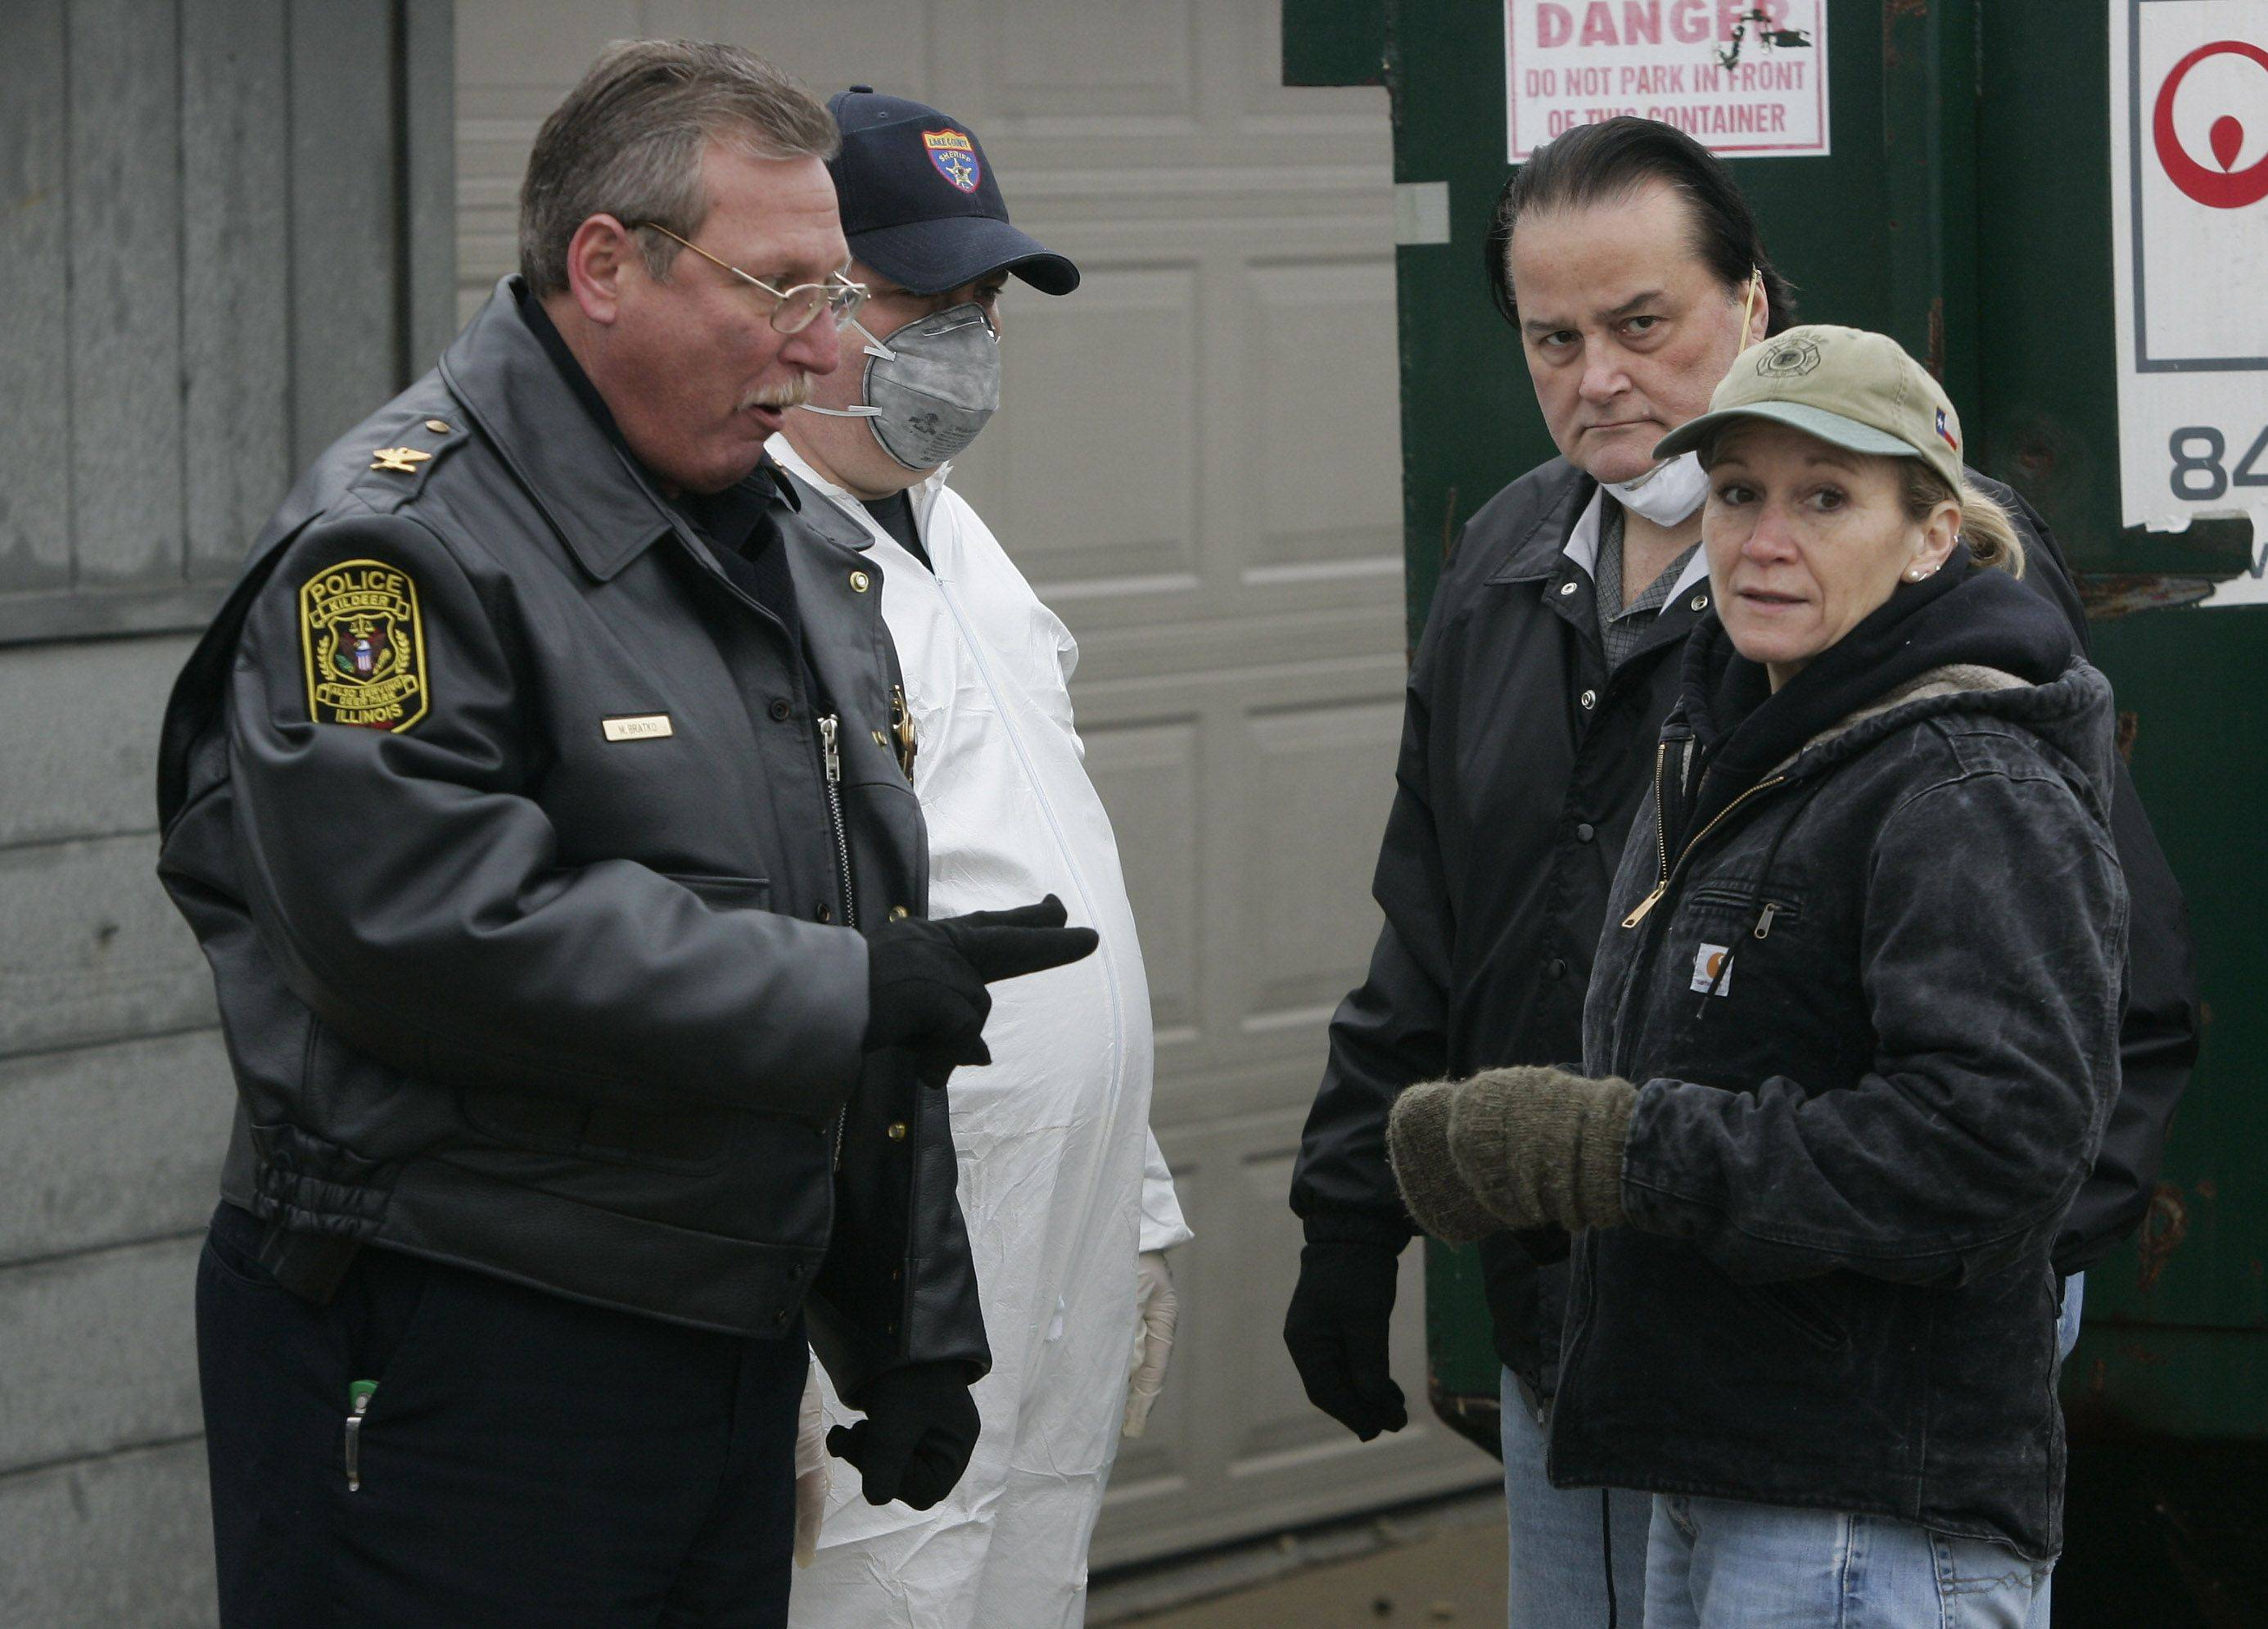 Kildeer police Cmdr. Mike Bratko, left, and Lake County sheriff's investigators talk to animal rescue specialist Dana Deutsch, right, as they investigate the scene at Muddy Paws Dog Rescue in Deer Park.